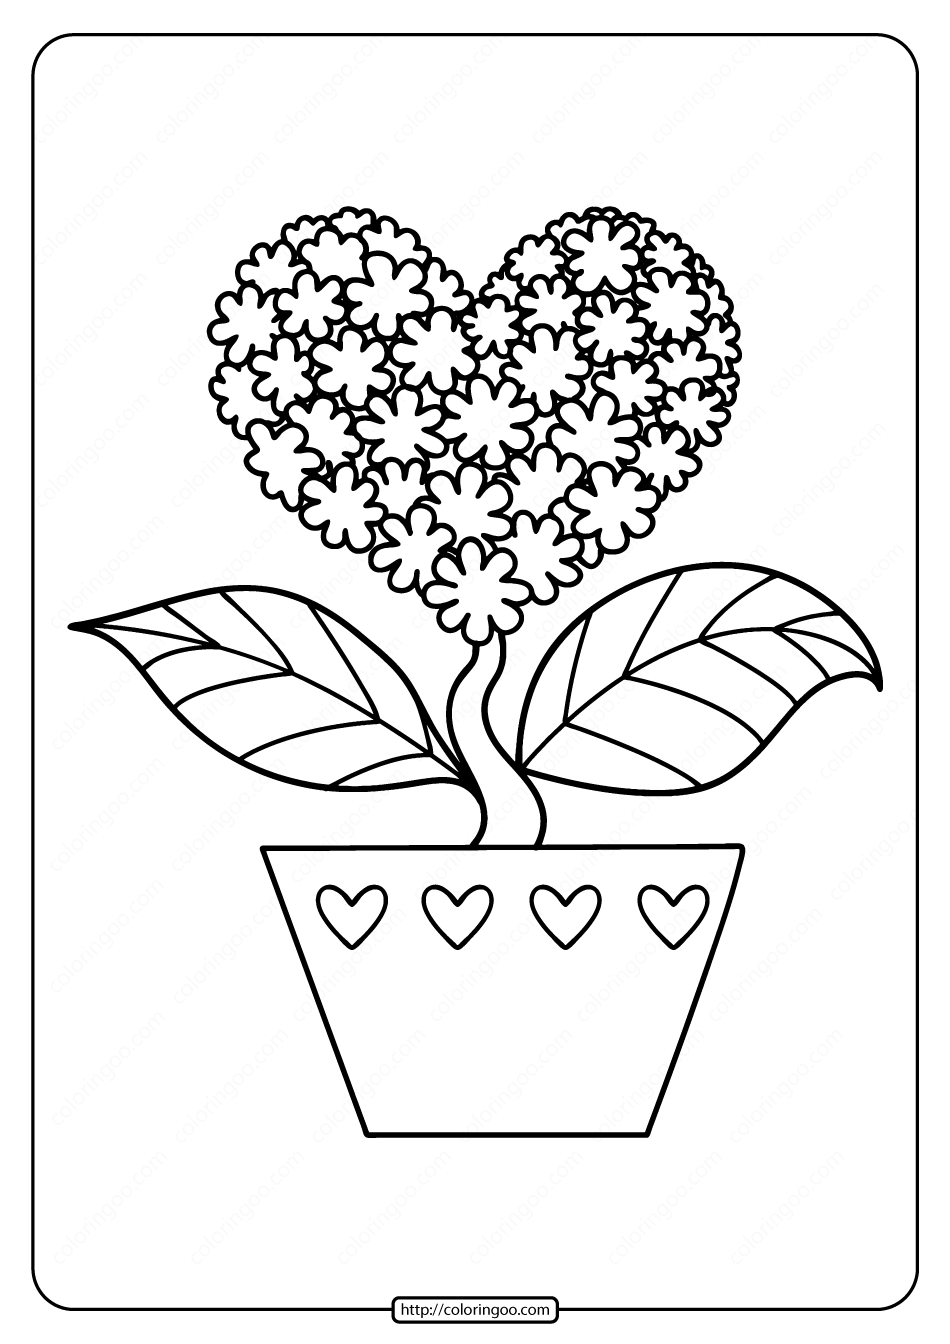 Free Printable Heart Shaped Flower Coloring Page